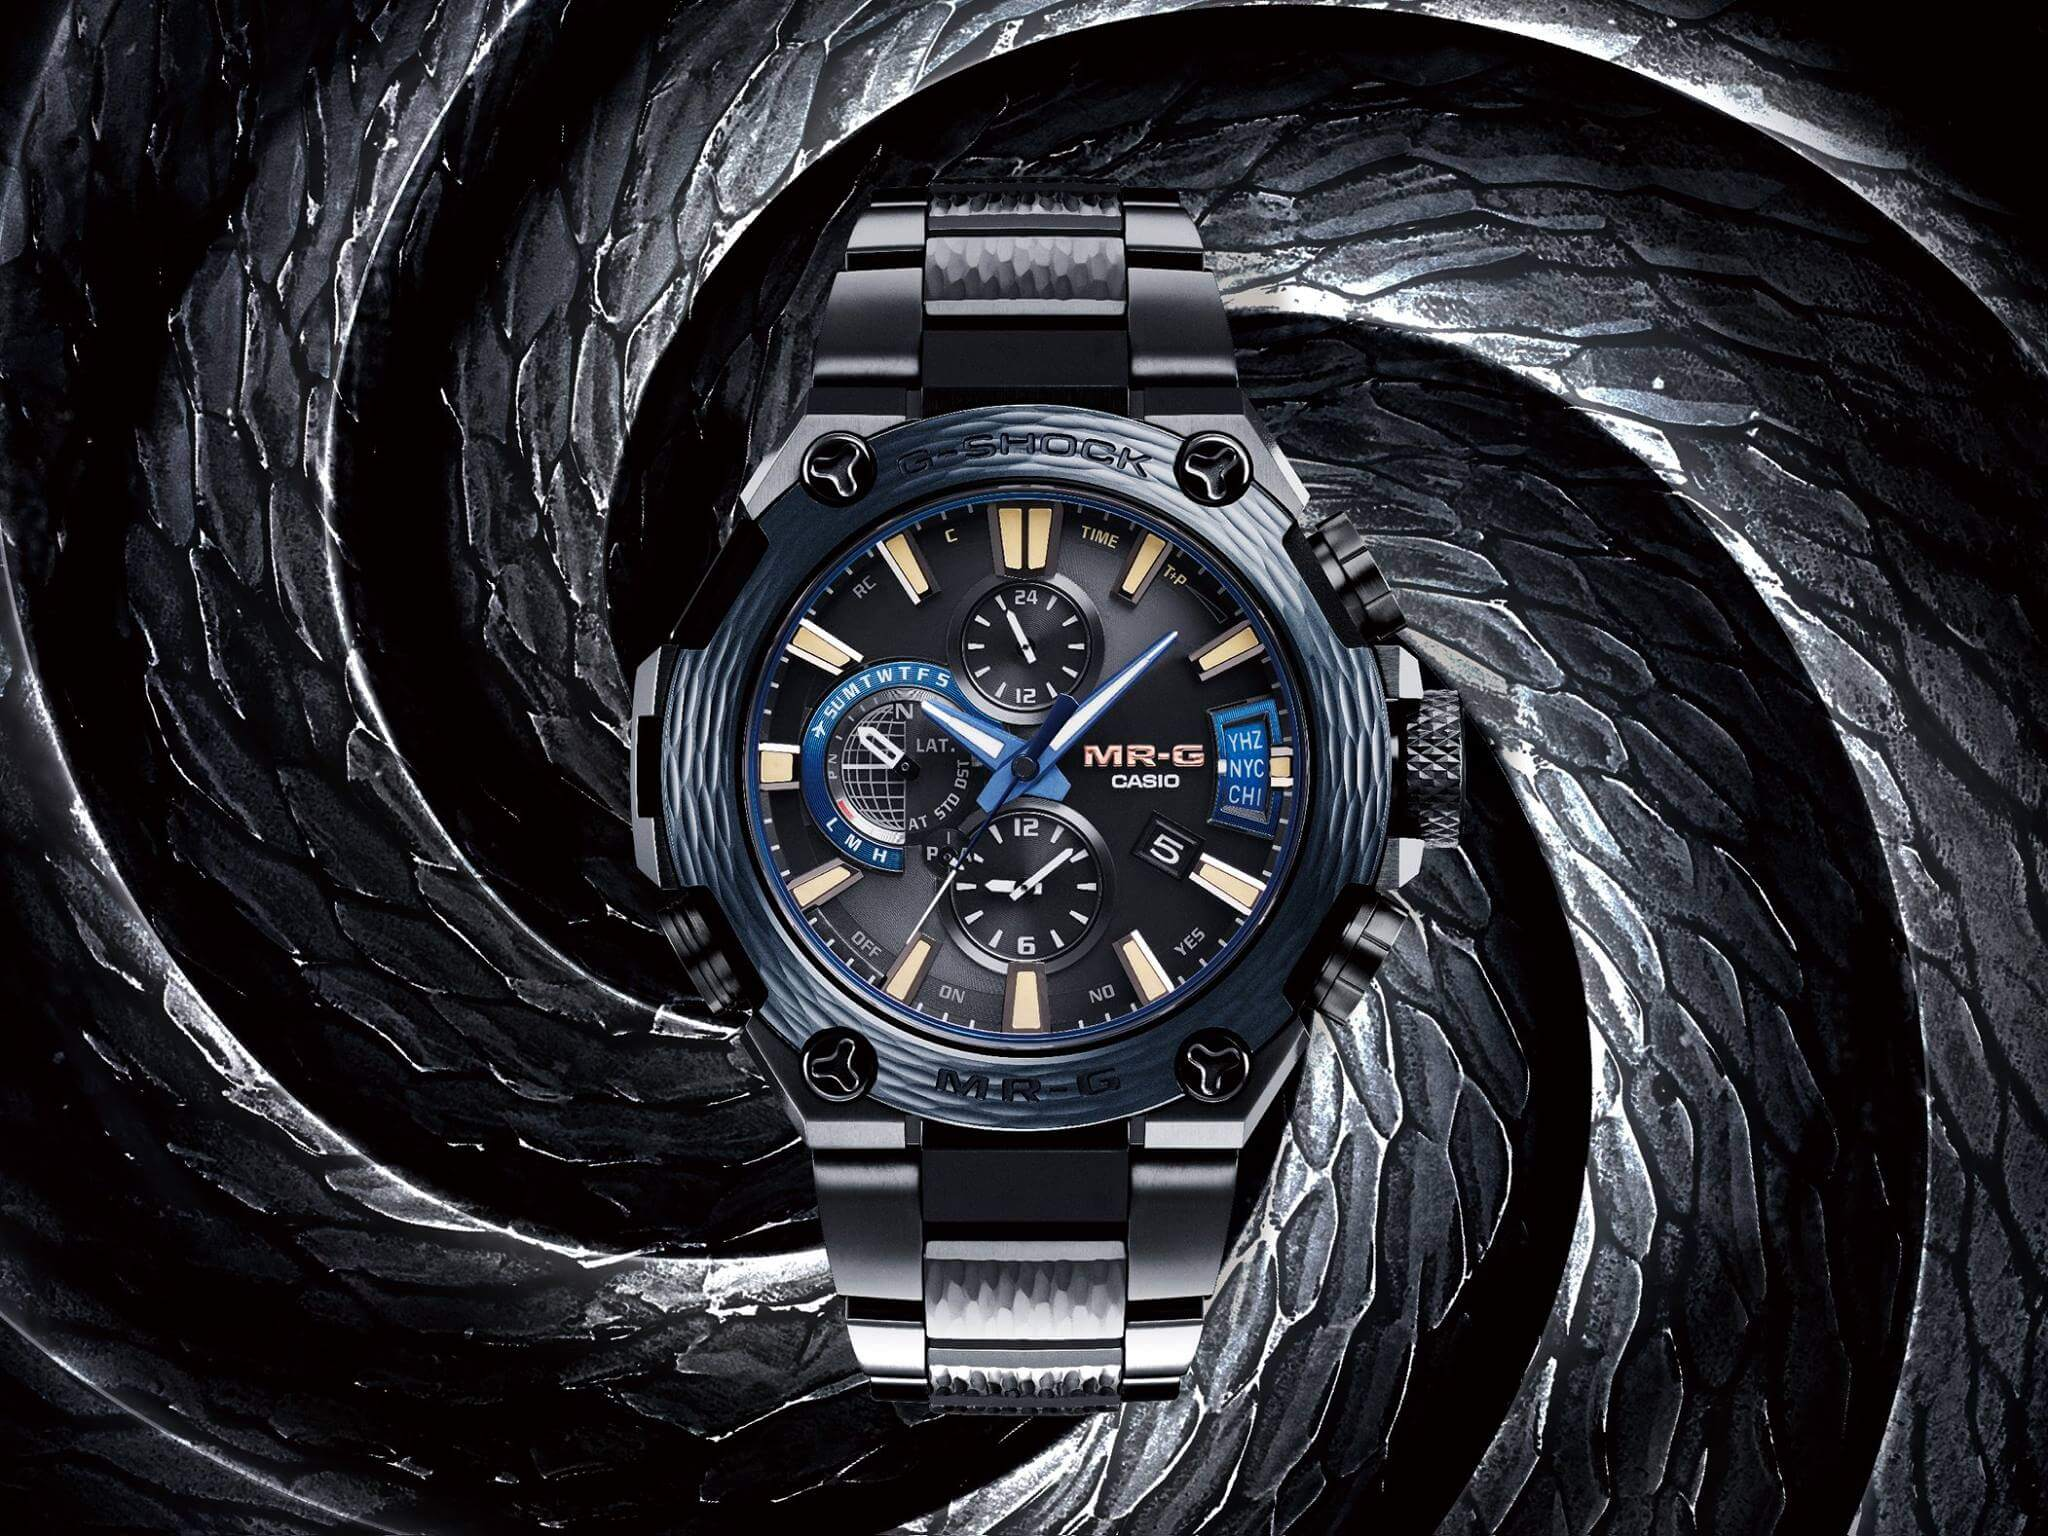 796d601f552a G-Shock MRG-G2000HT-1A Baselworld 2017 Limited Edition – G-Central G ...